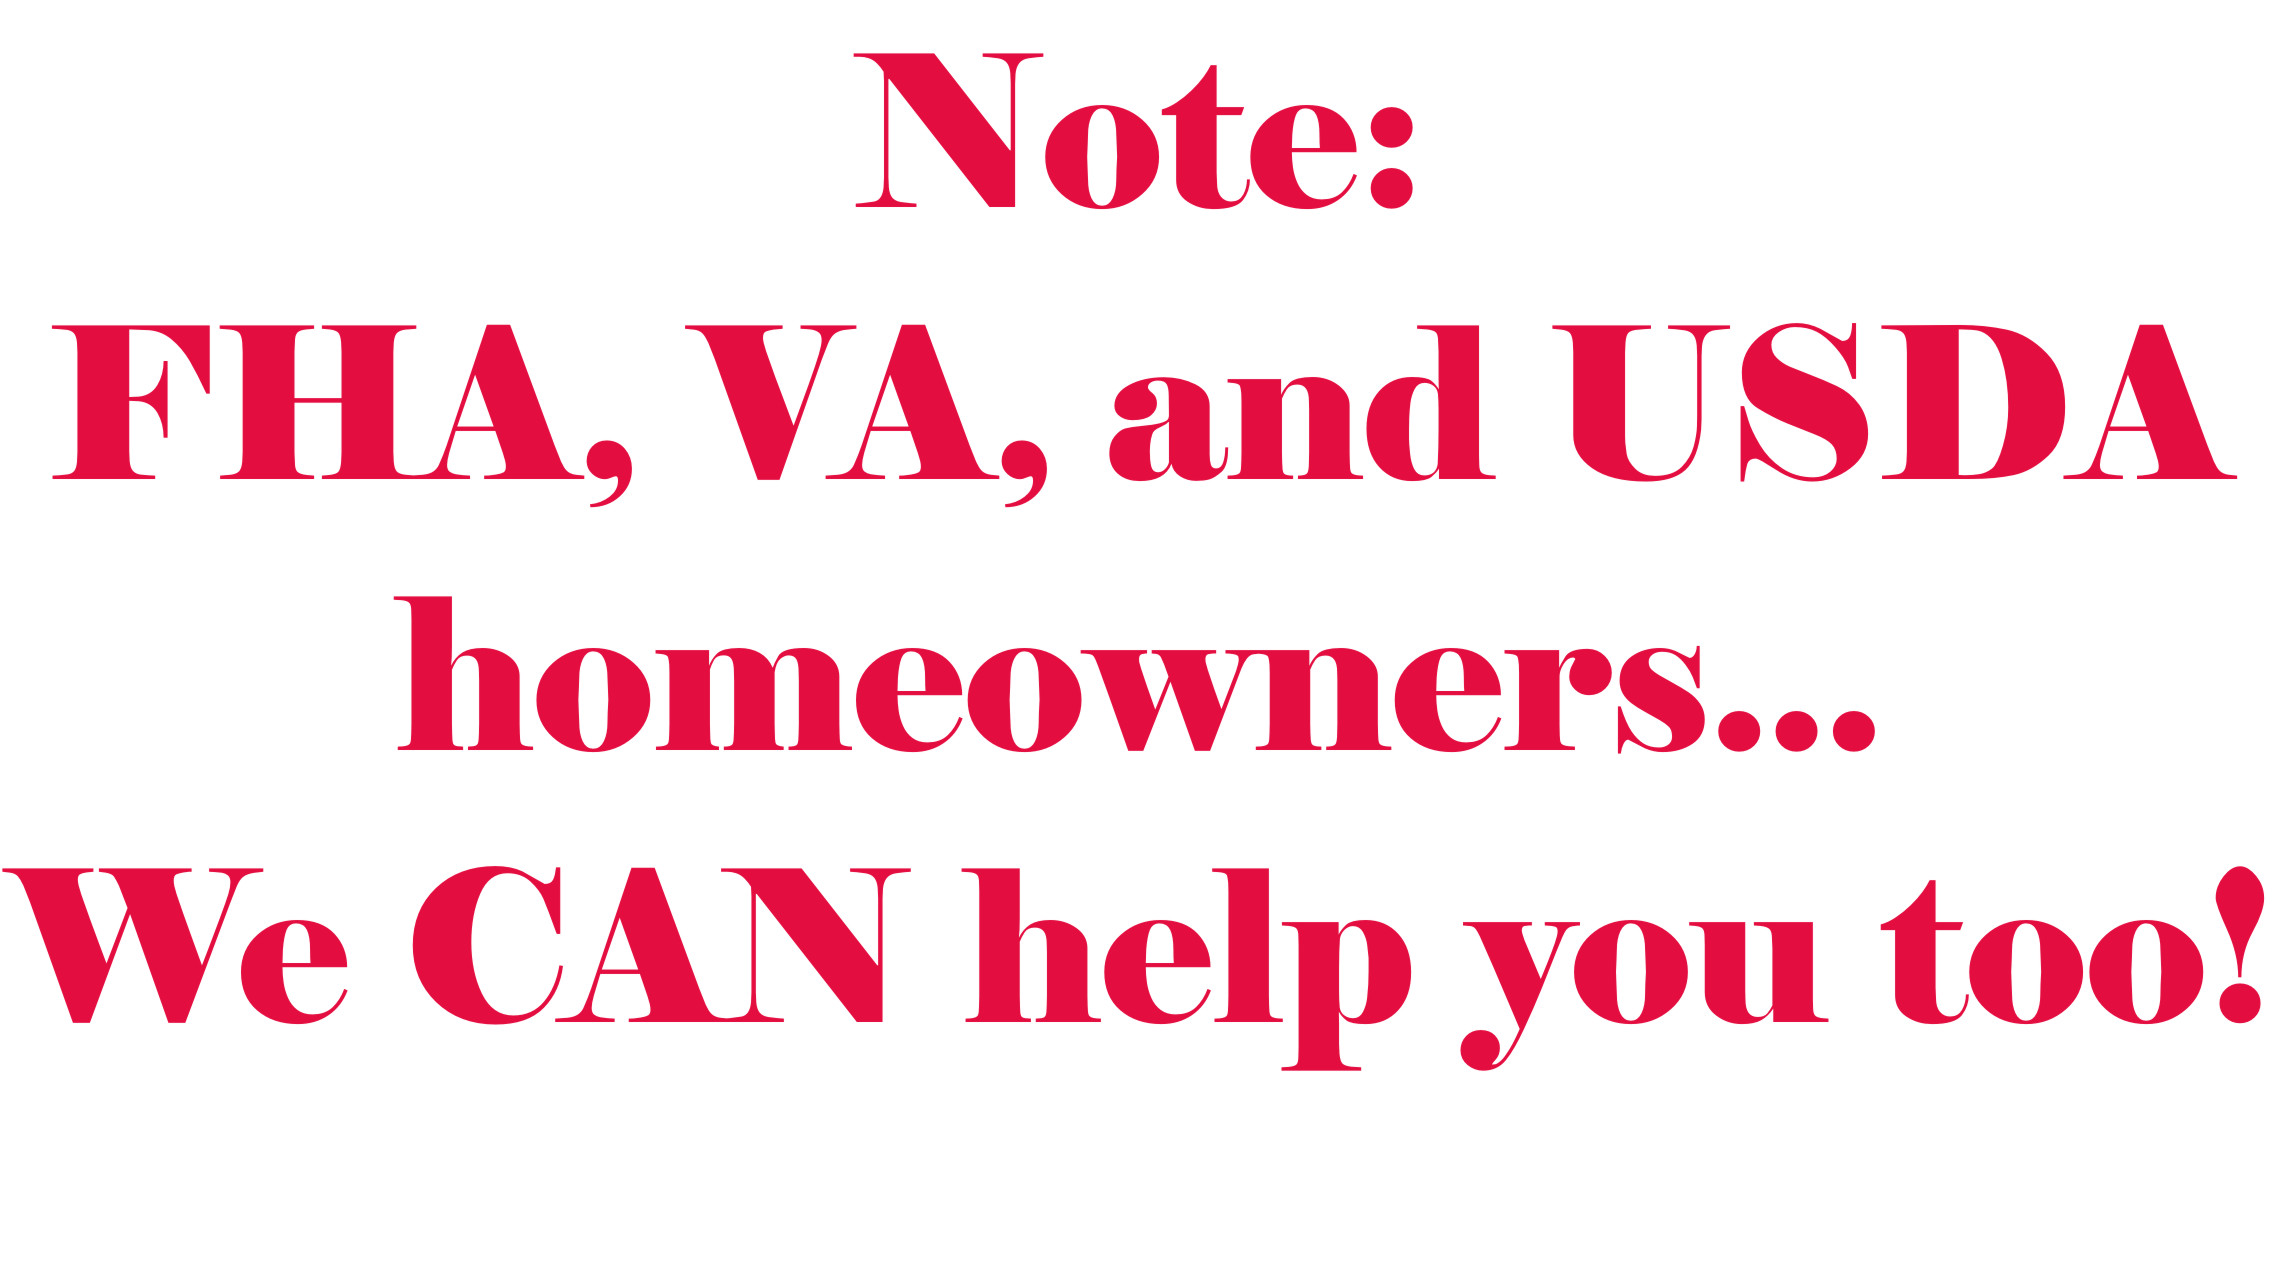 Note: FHA, VA, USA homeowners...